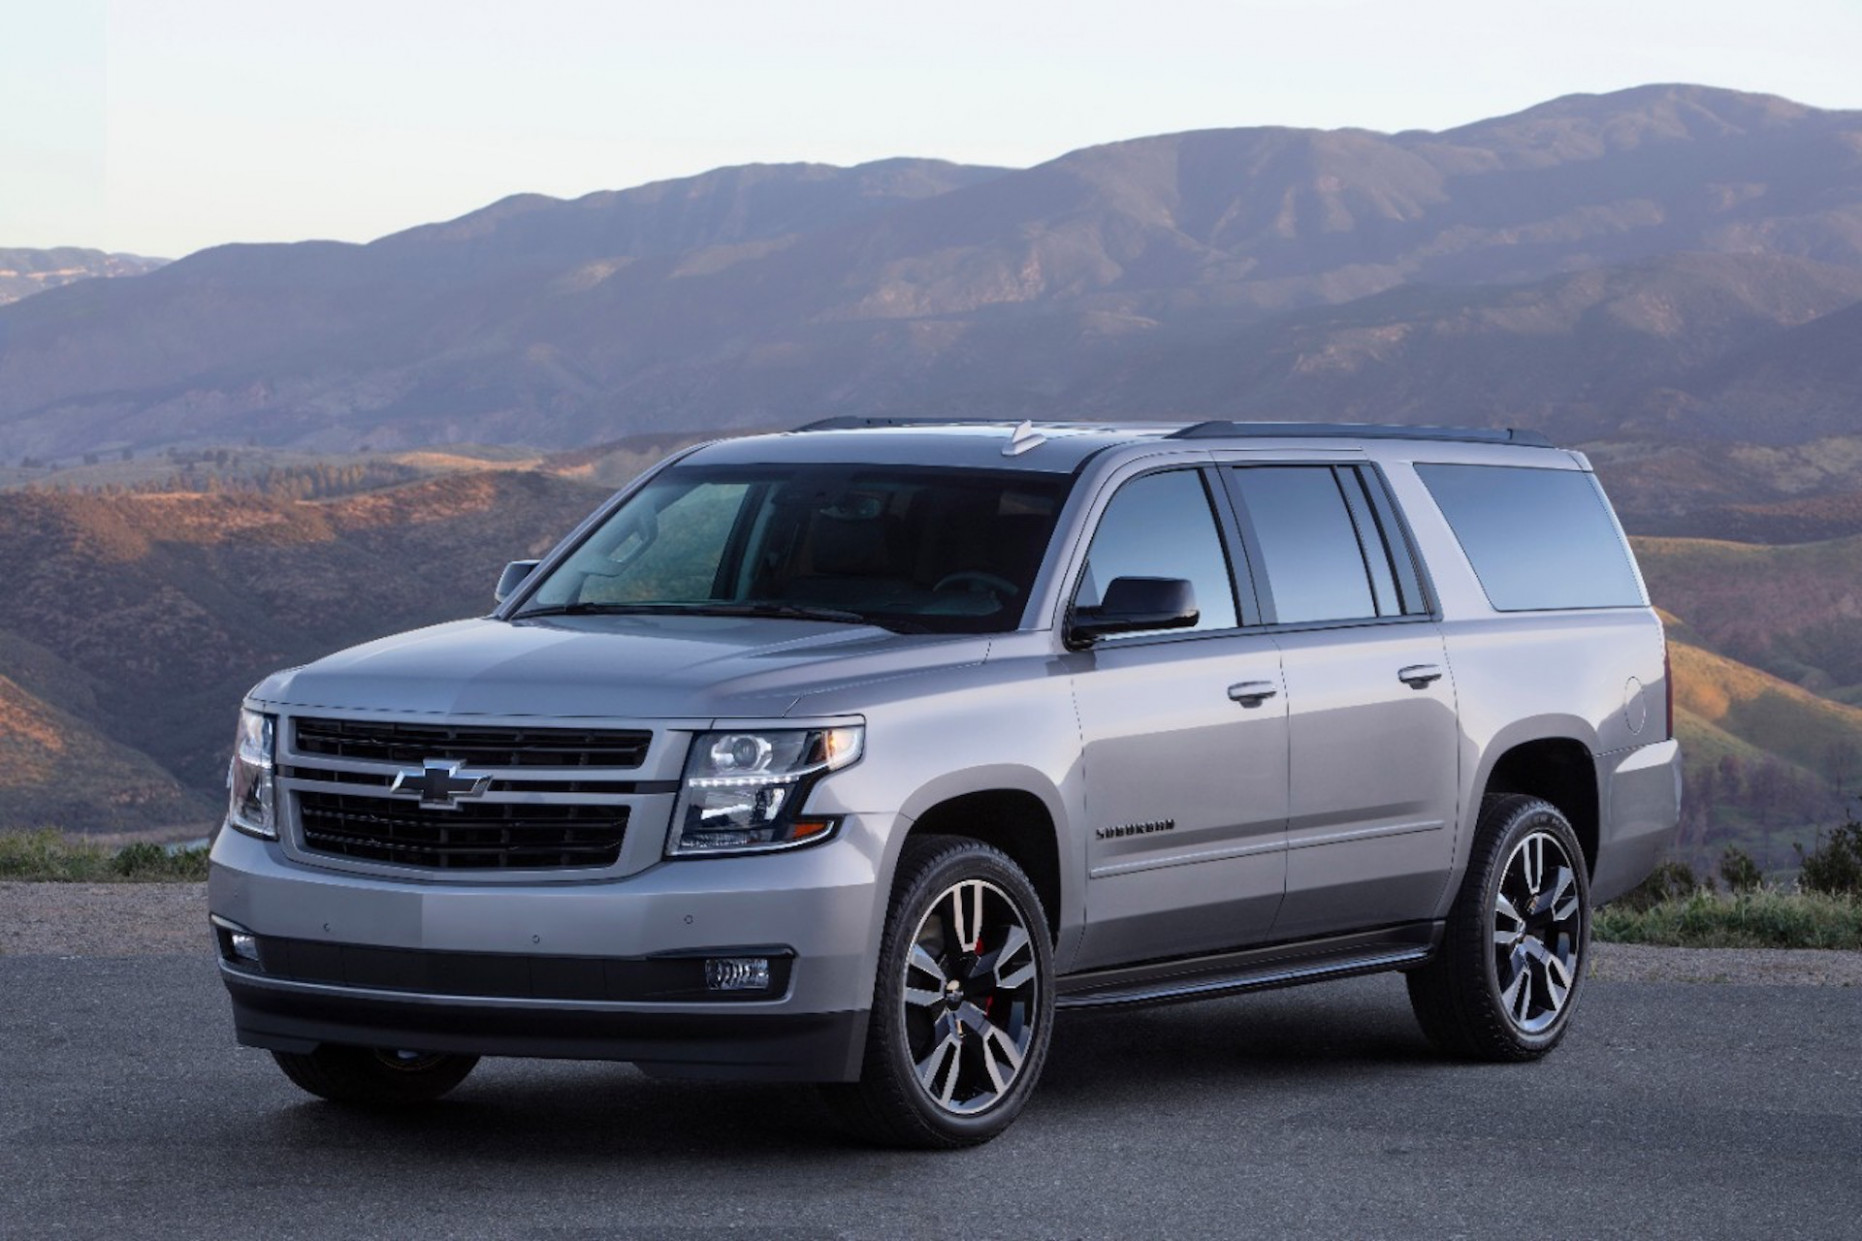 6 Chevrolet Suburban (Chevy) Review, Ratings, Specs, Prices ...